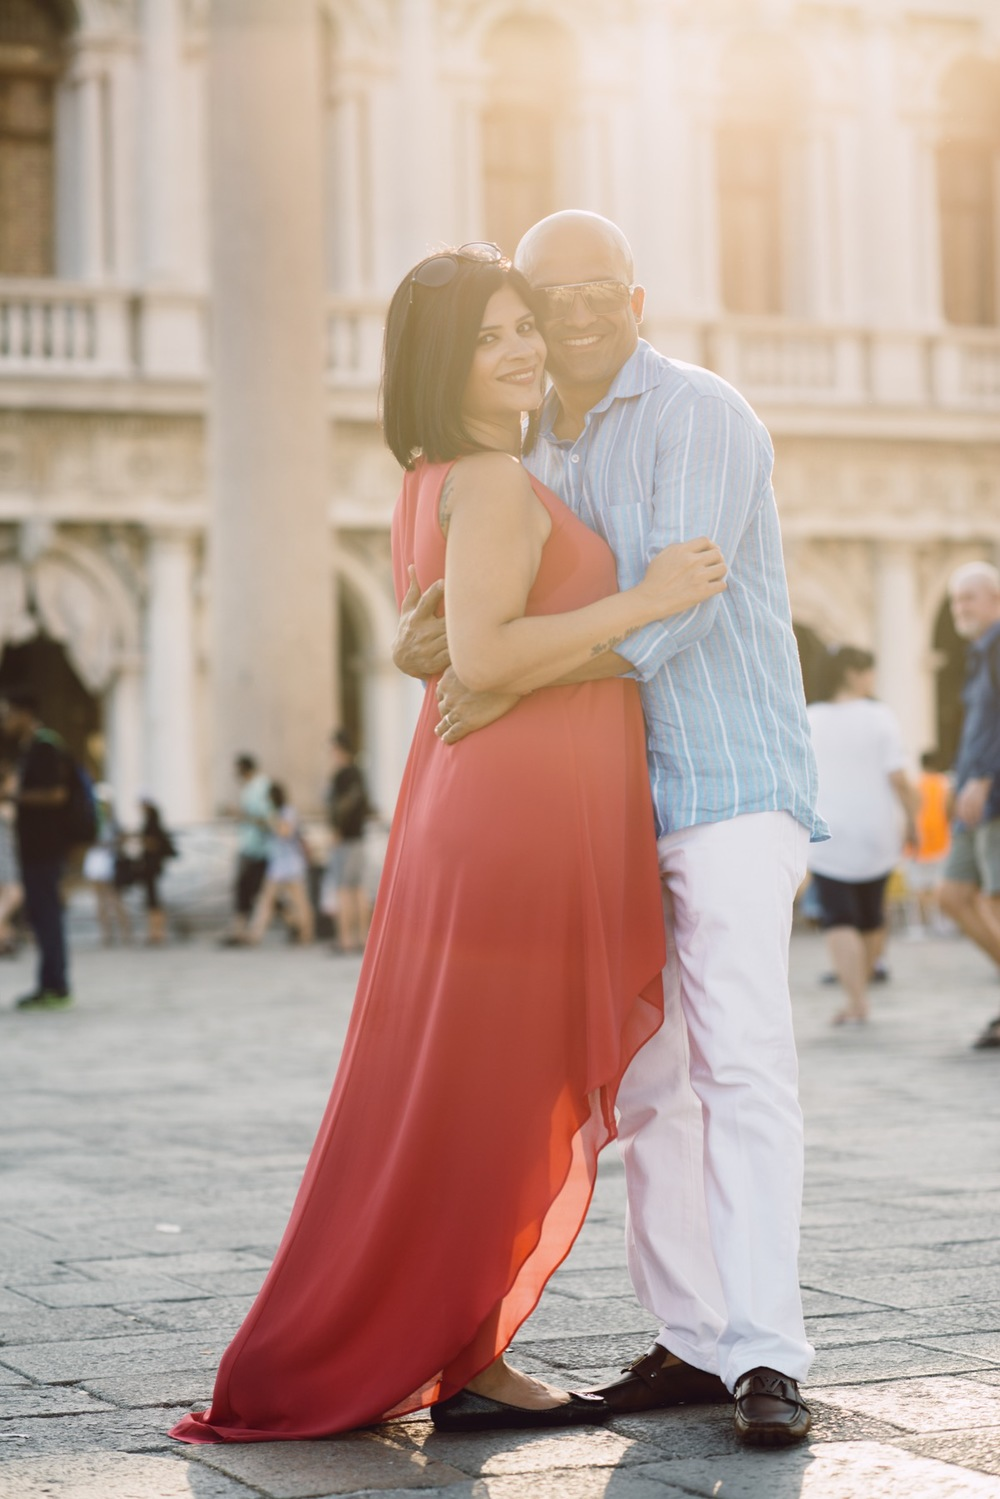 Family Vacation in Venice via Flytographer